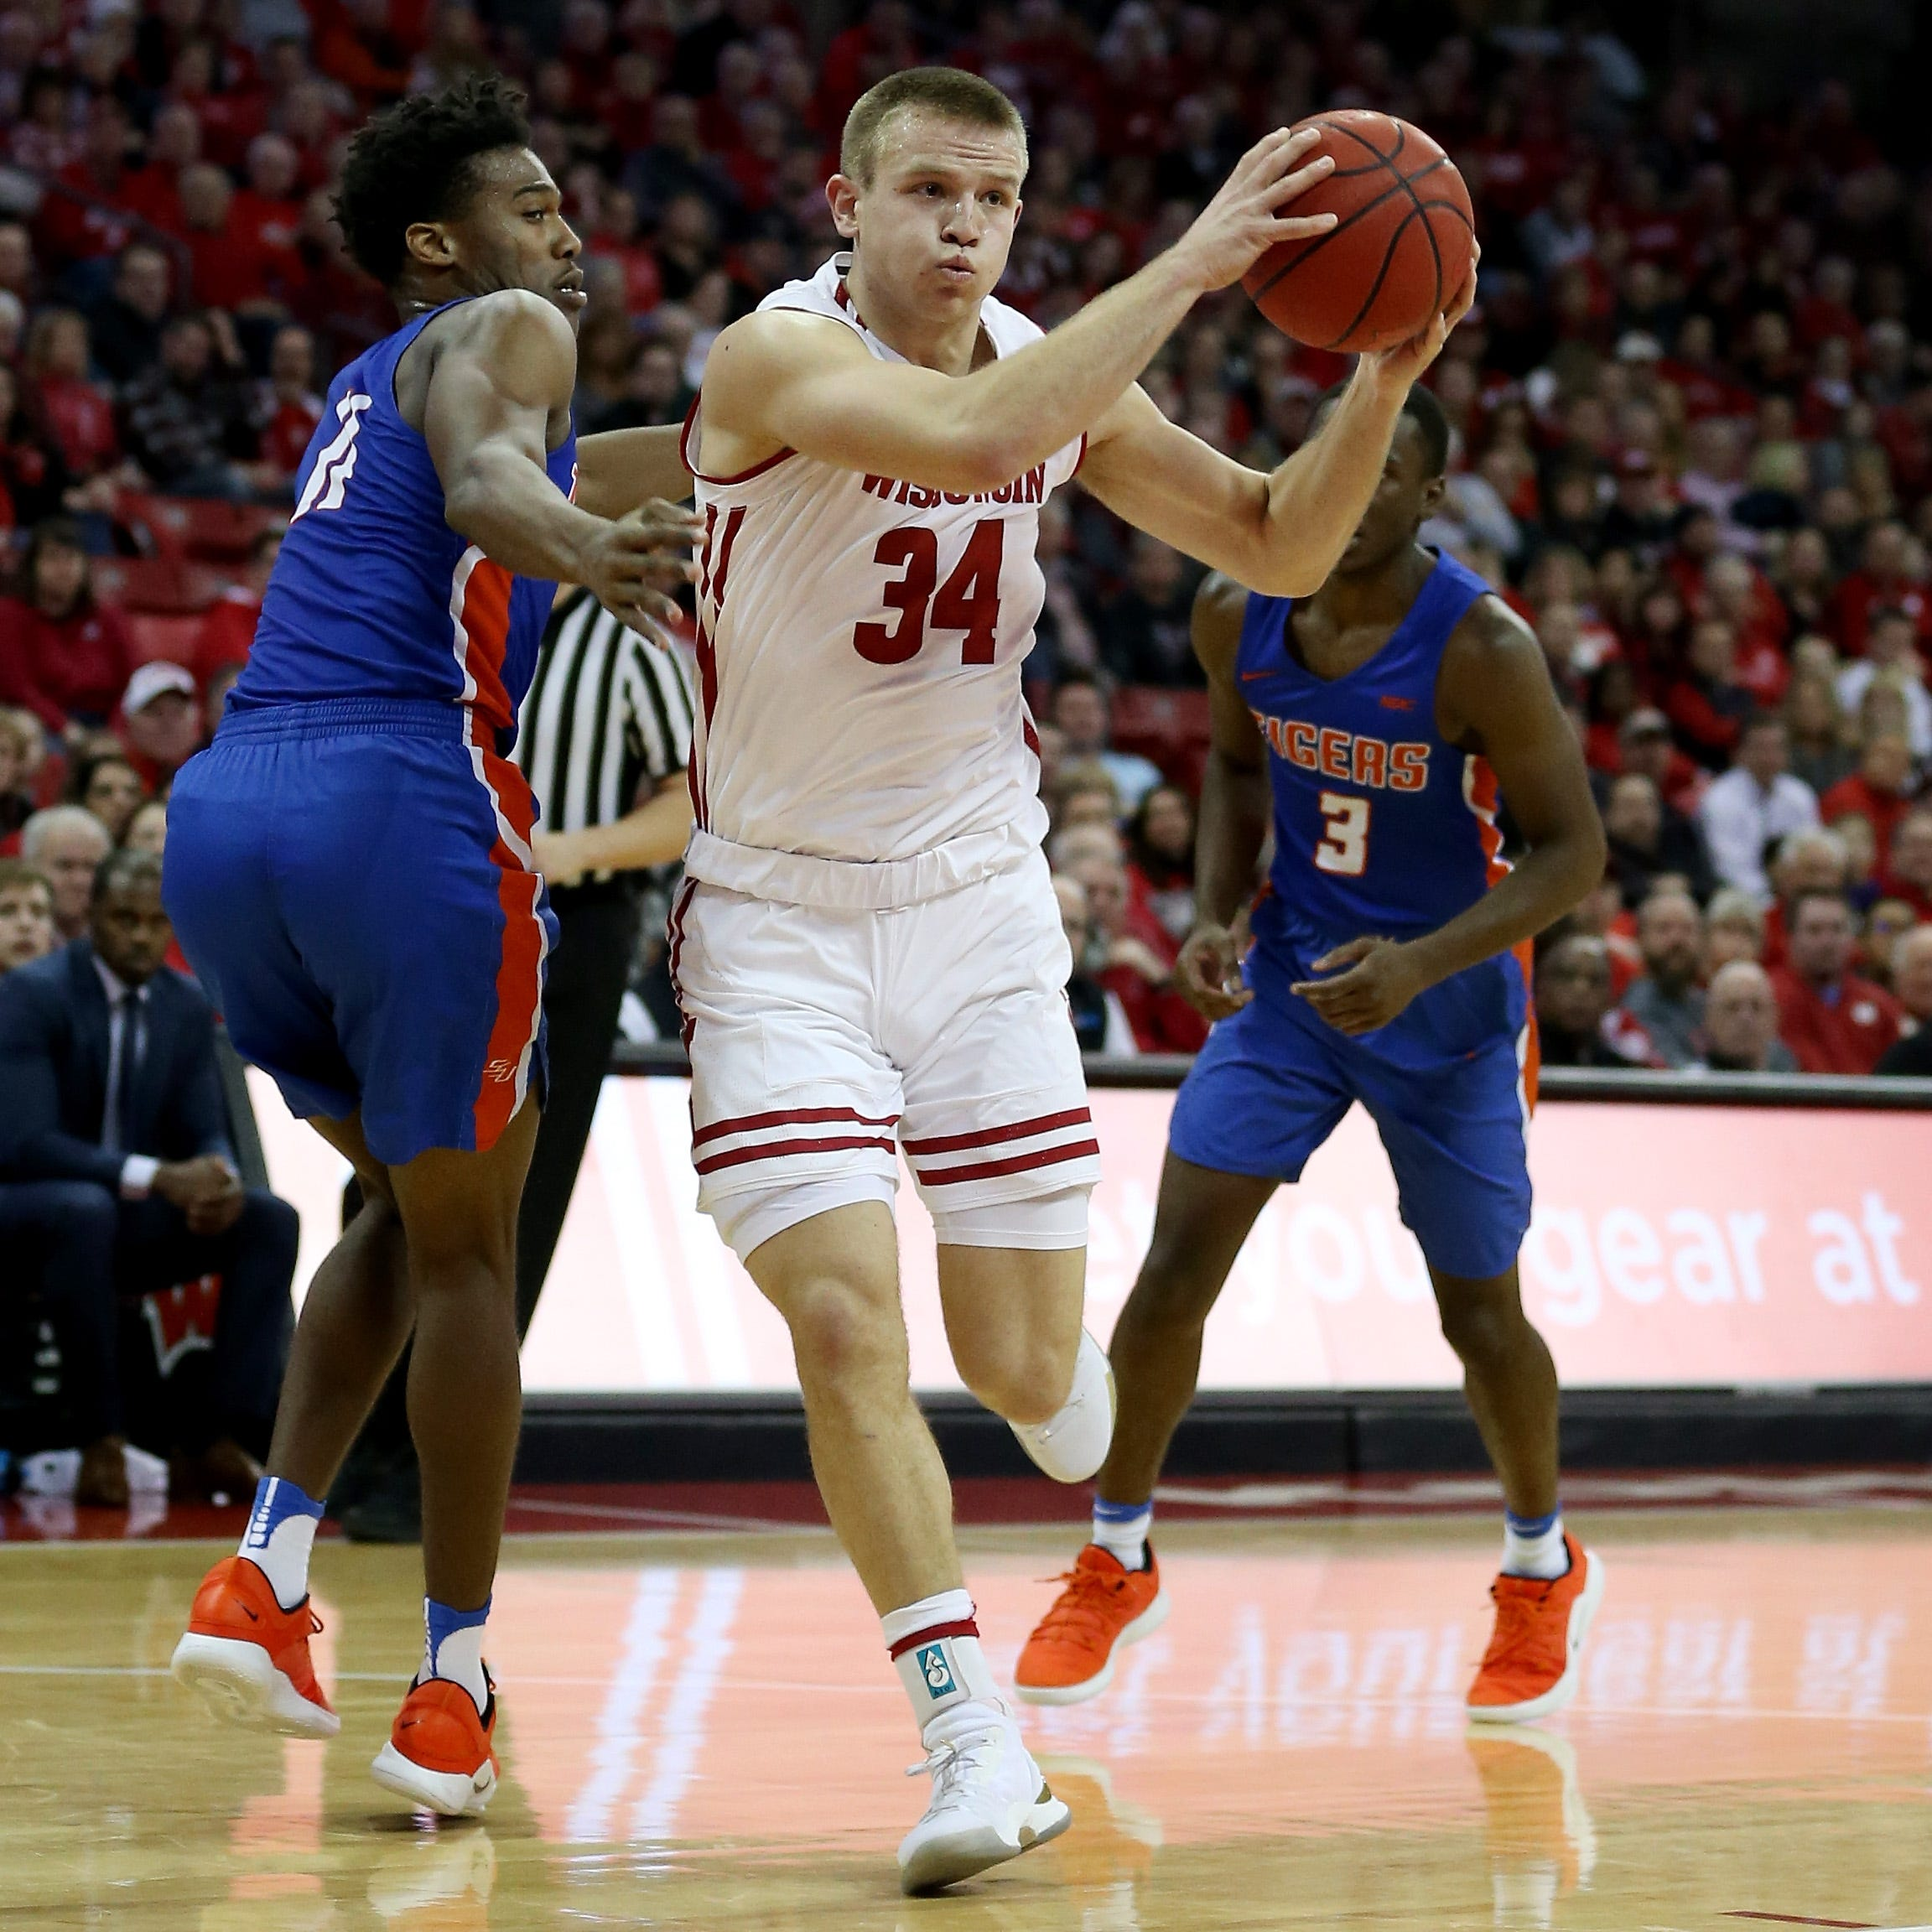 UW 101, Savannah State 60: Brad Davison shoots his way out of his slump